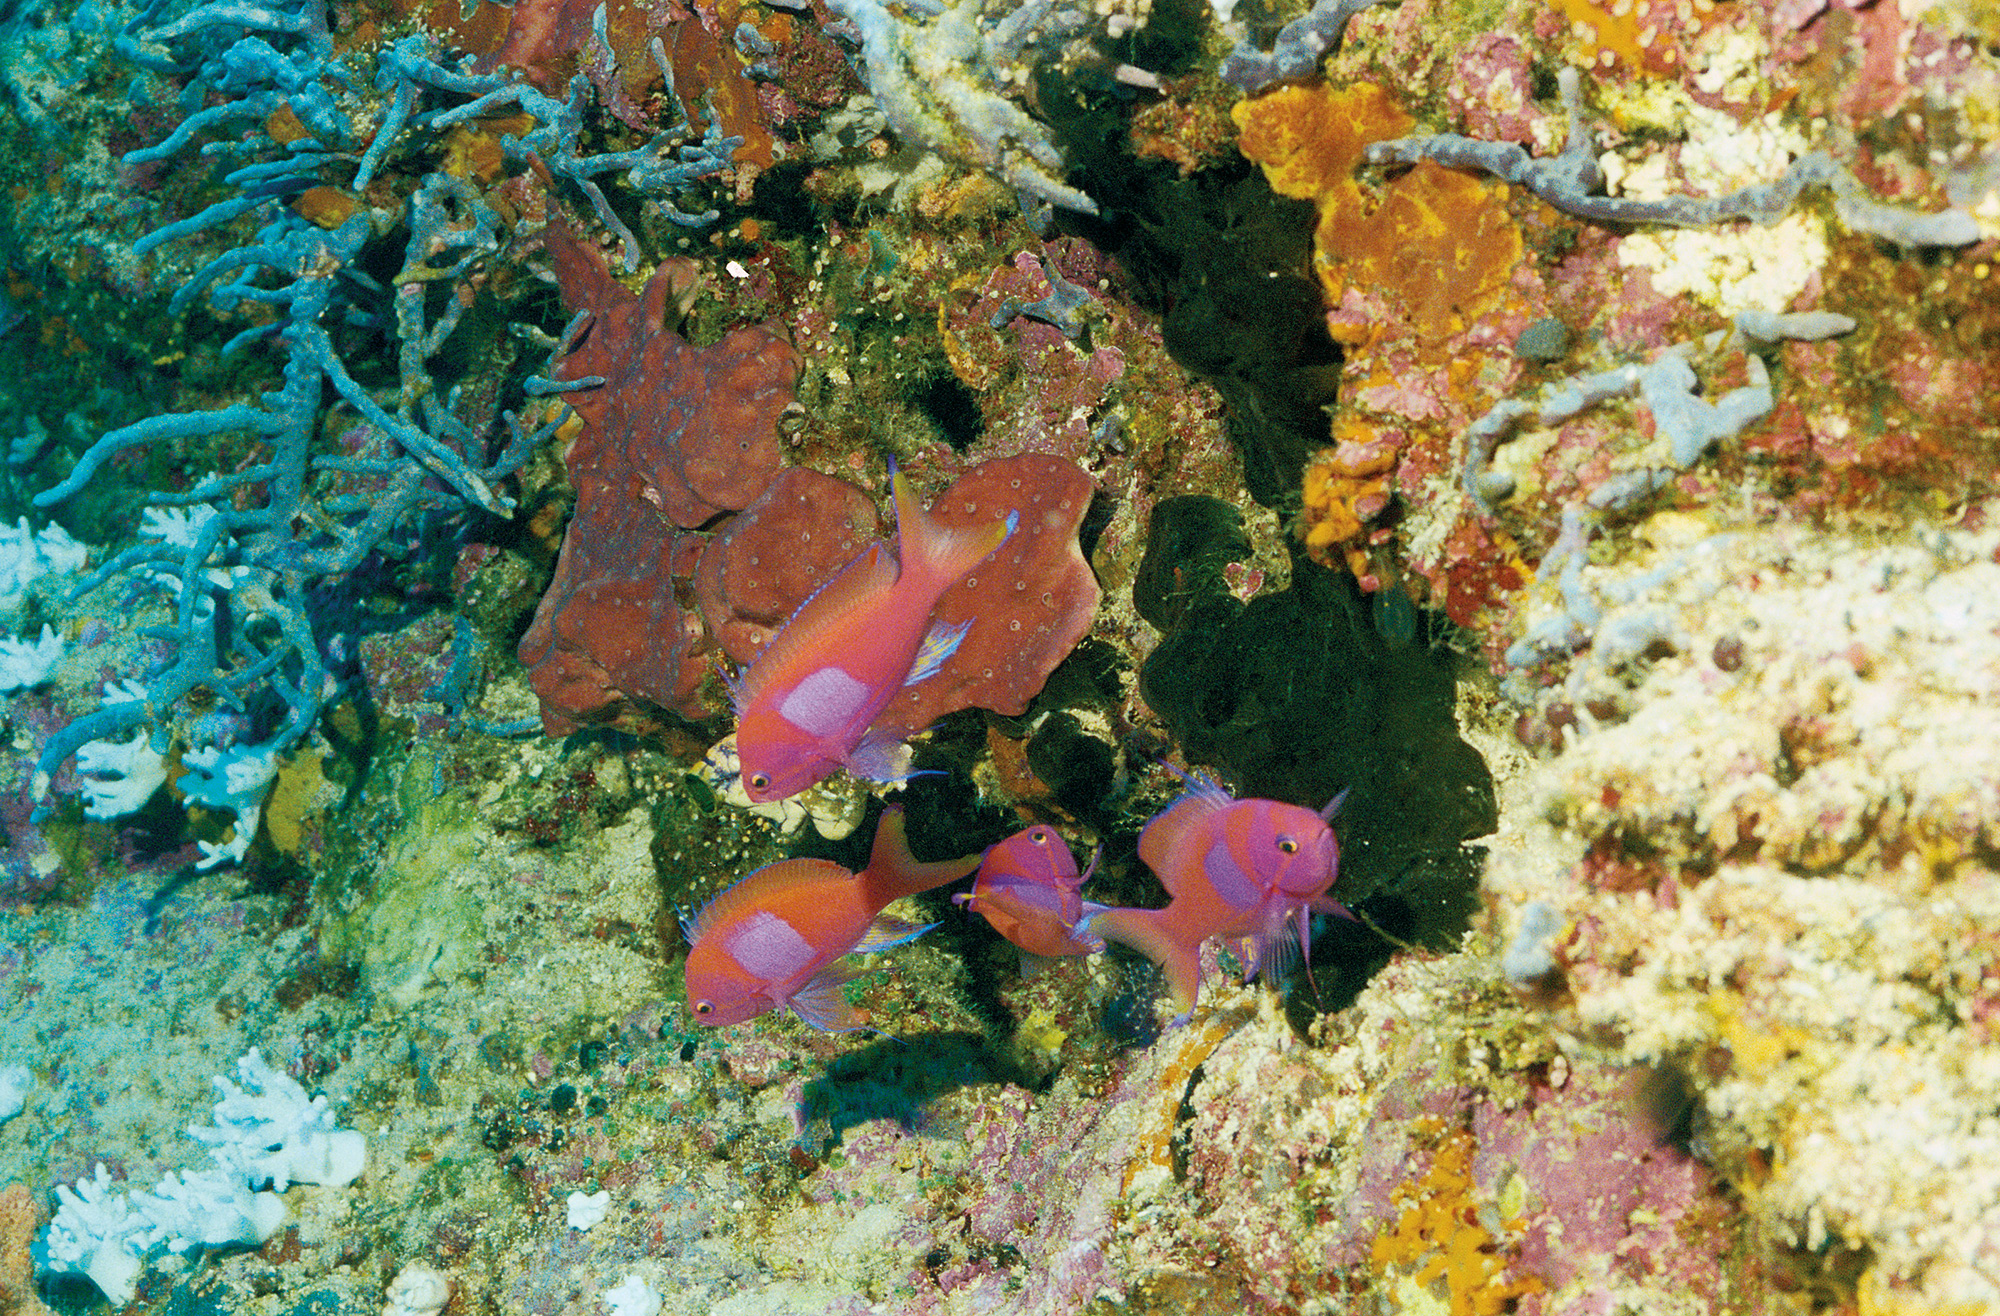 Squarespot Anthias à Papau, Nouvelle-Guinée, photographie par Sam Johnson